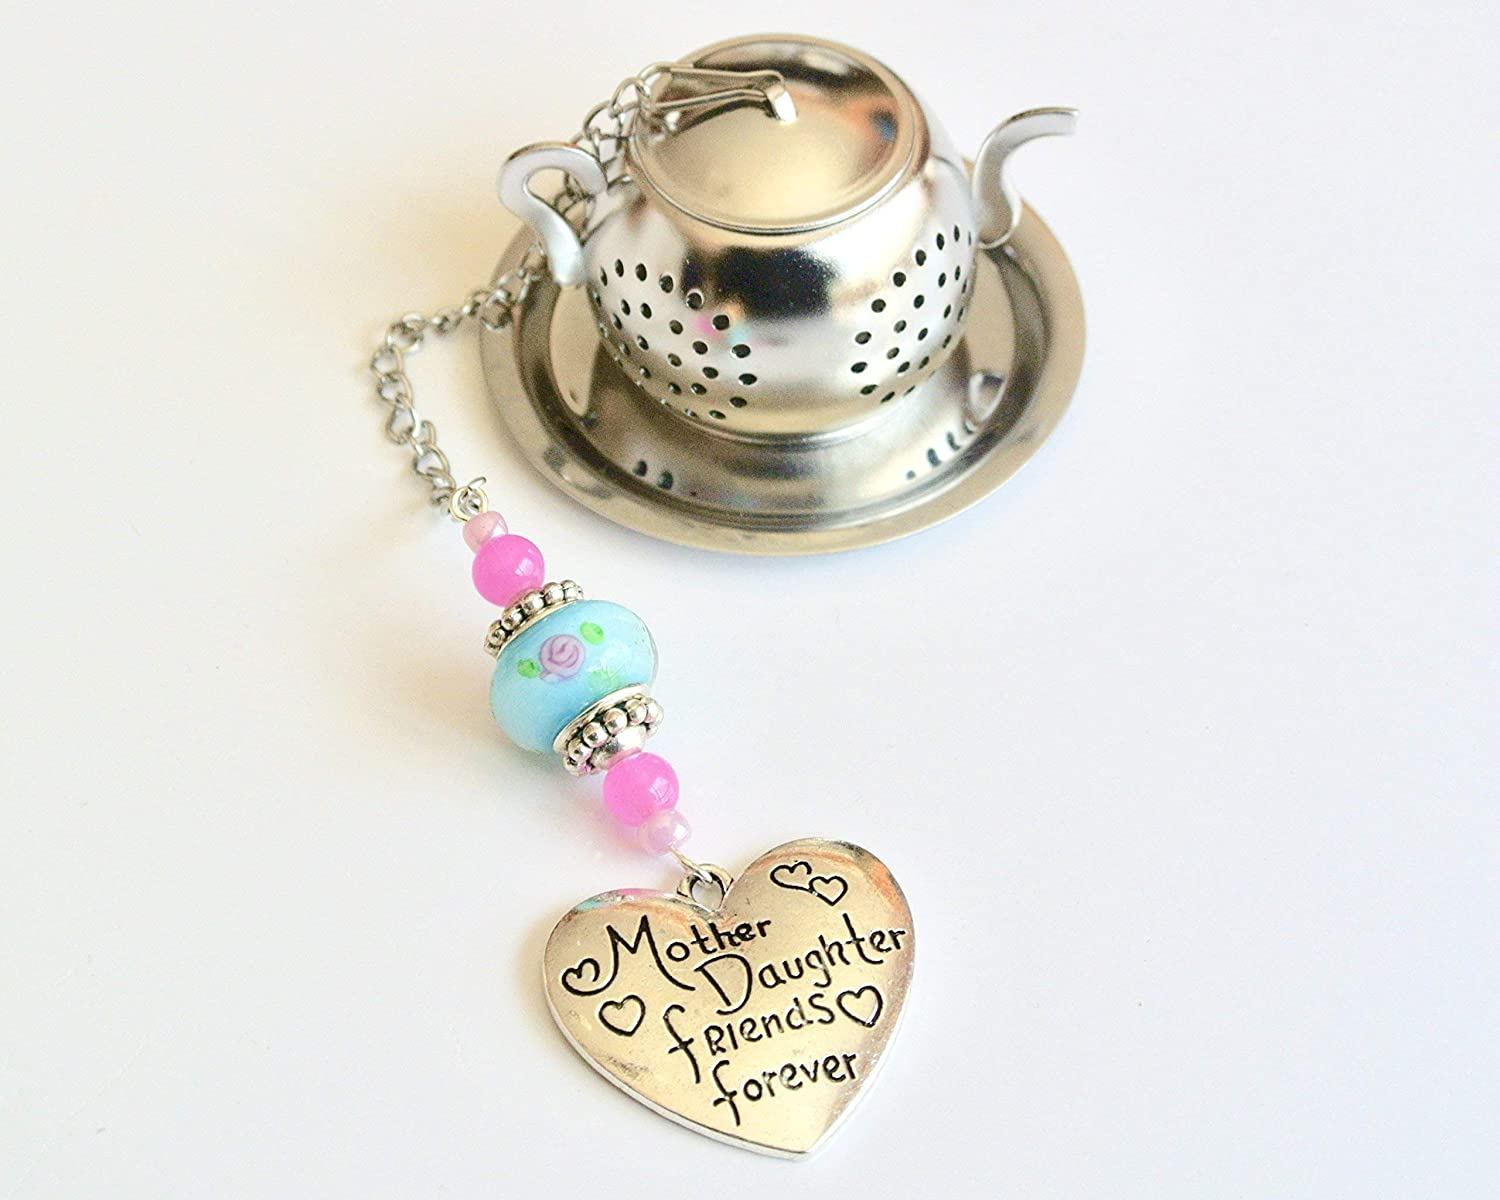 Mother Daughter Tea Infuser with Blue and Pink Beads and Heart Charm